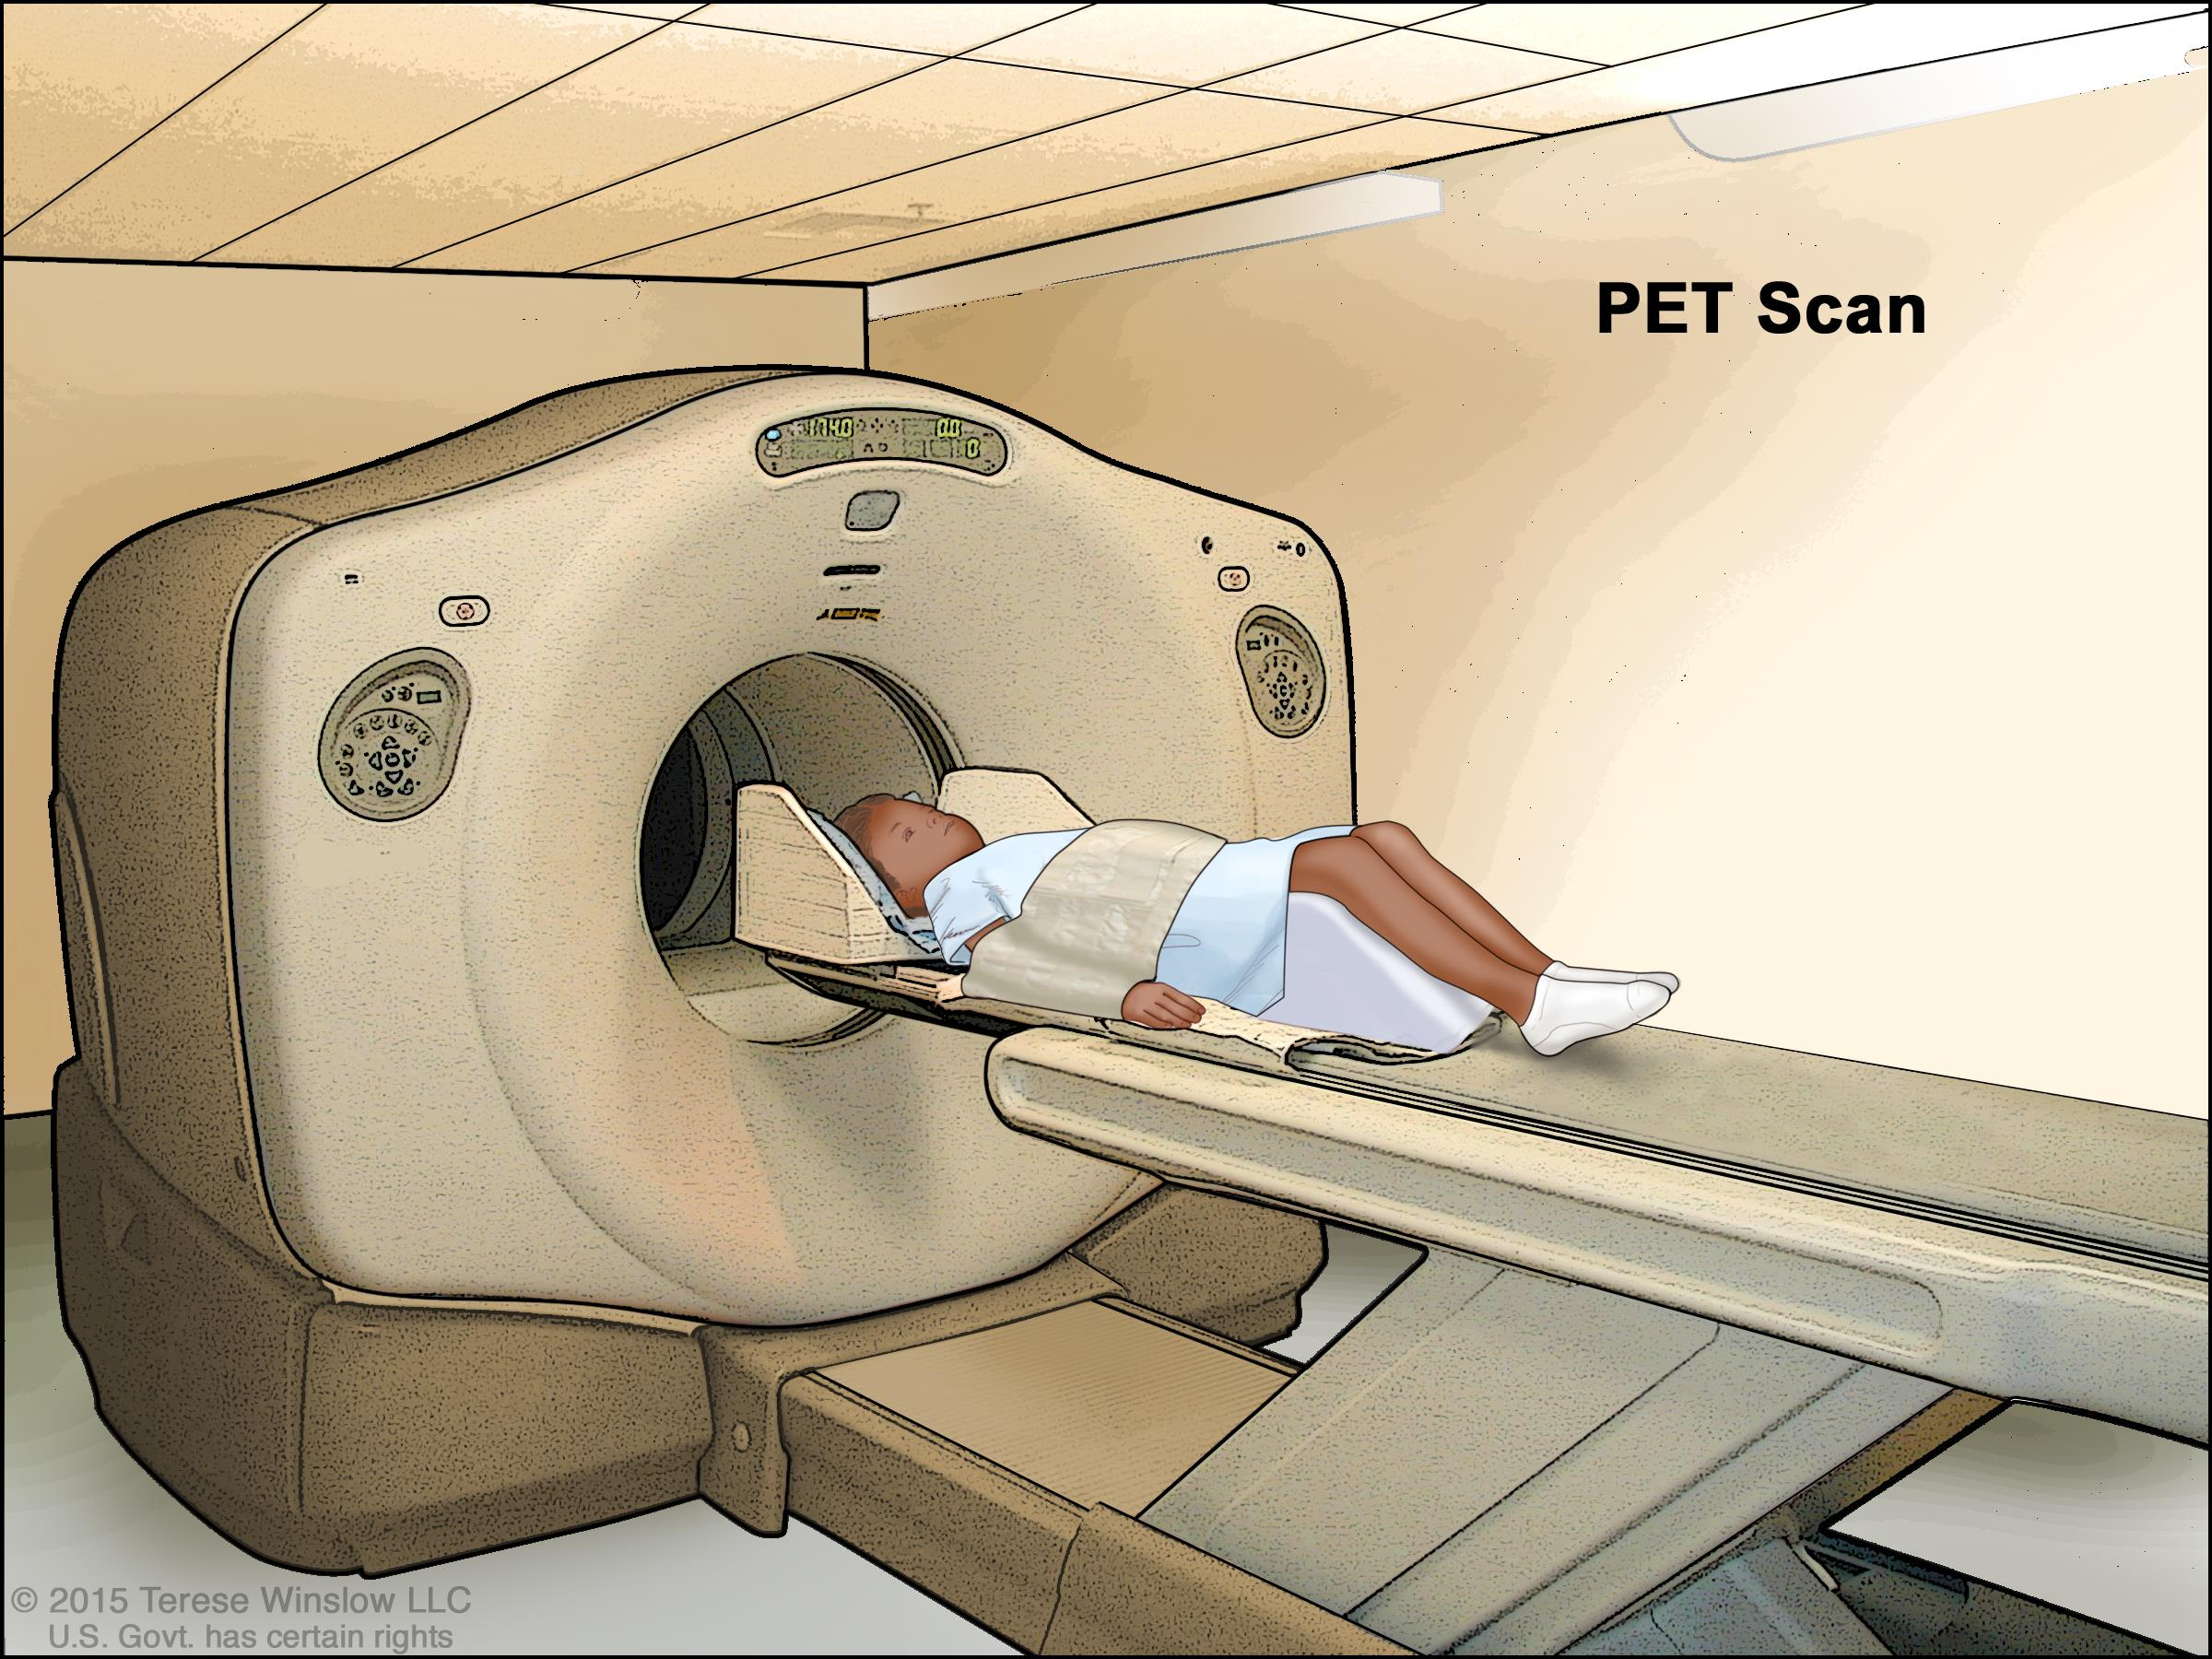 Positron emission tomography (PET) scan; drawing shows a child lying on table that slides through the PET scanner.